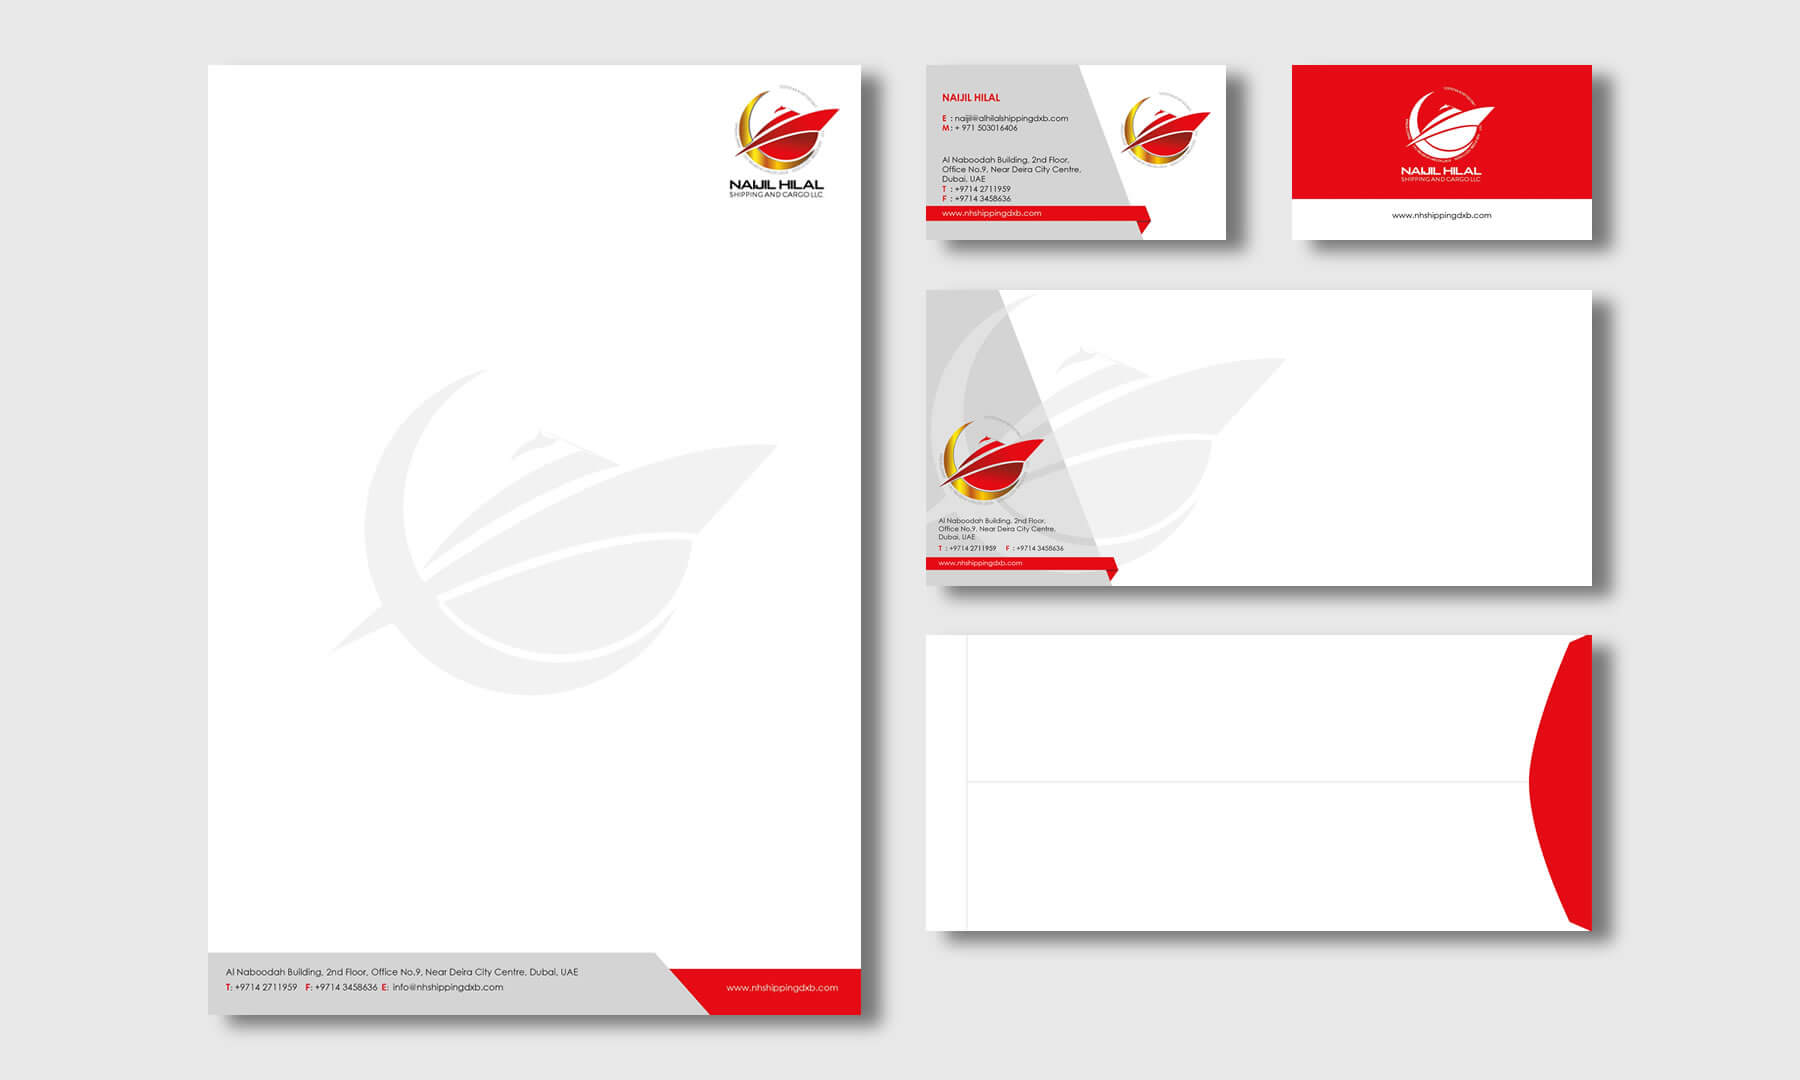 Business stationary designs by Kerala freelance designer